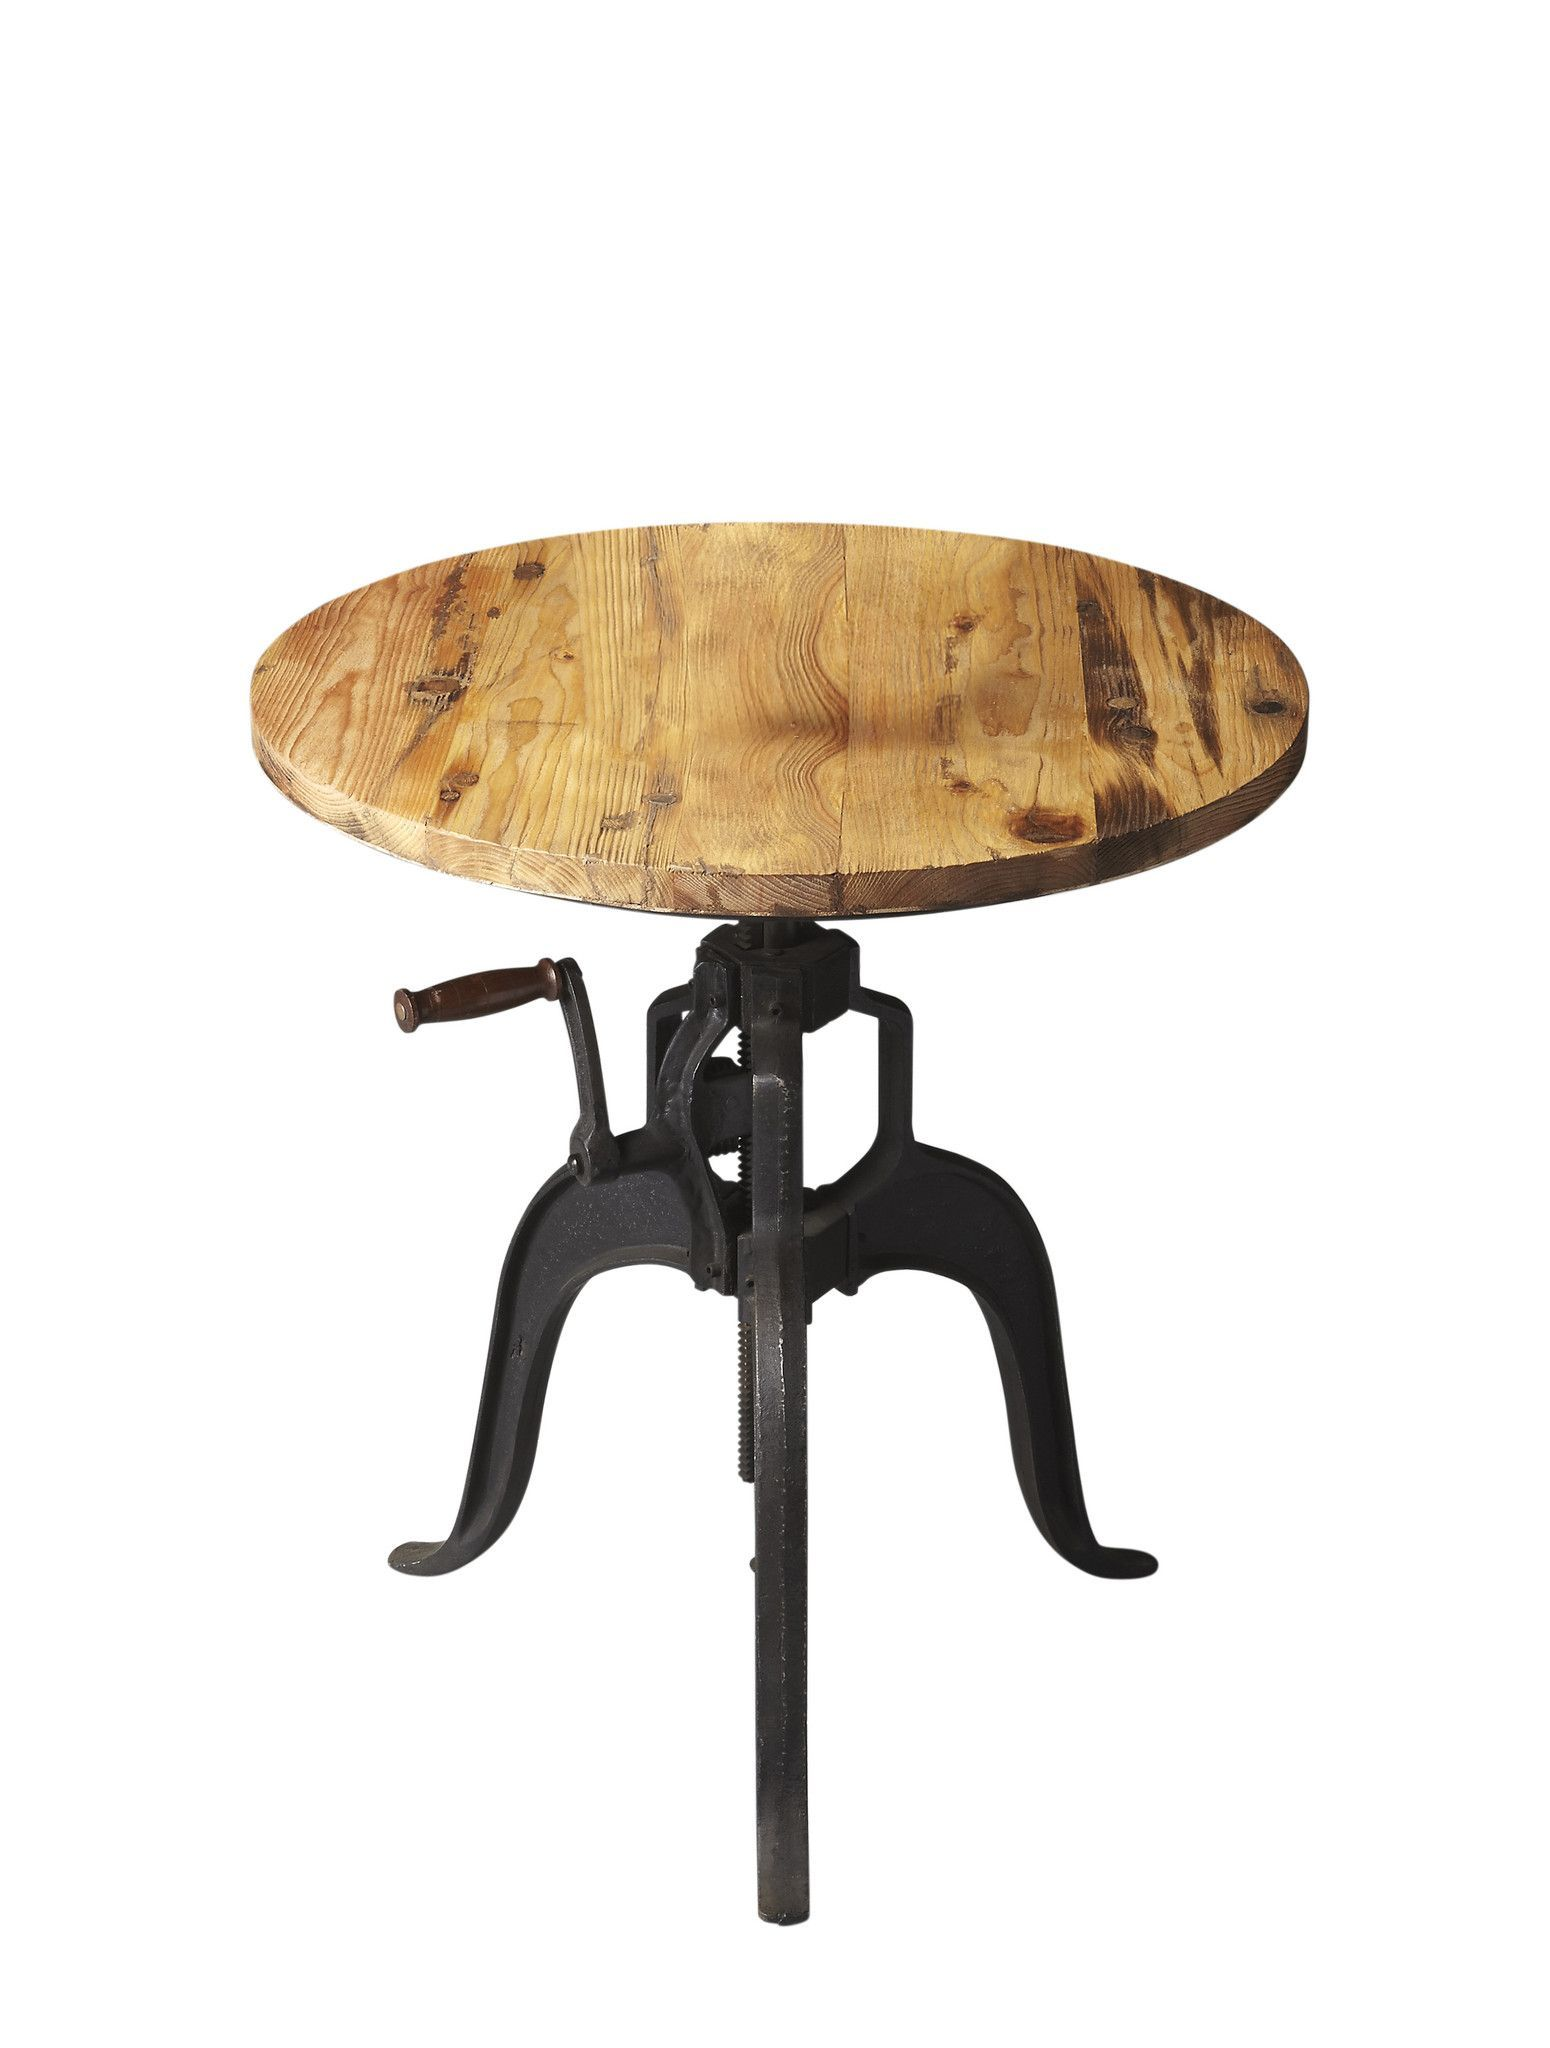 Industrial Chic Adjustable Crank Handle Foyer Table